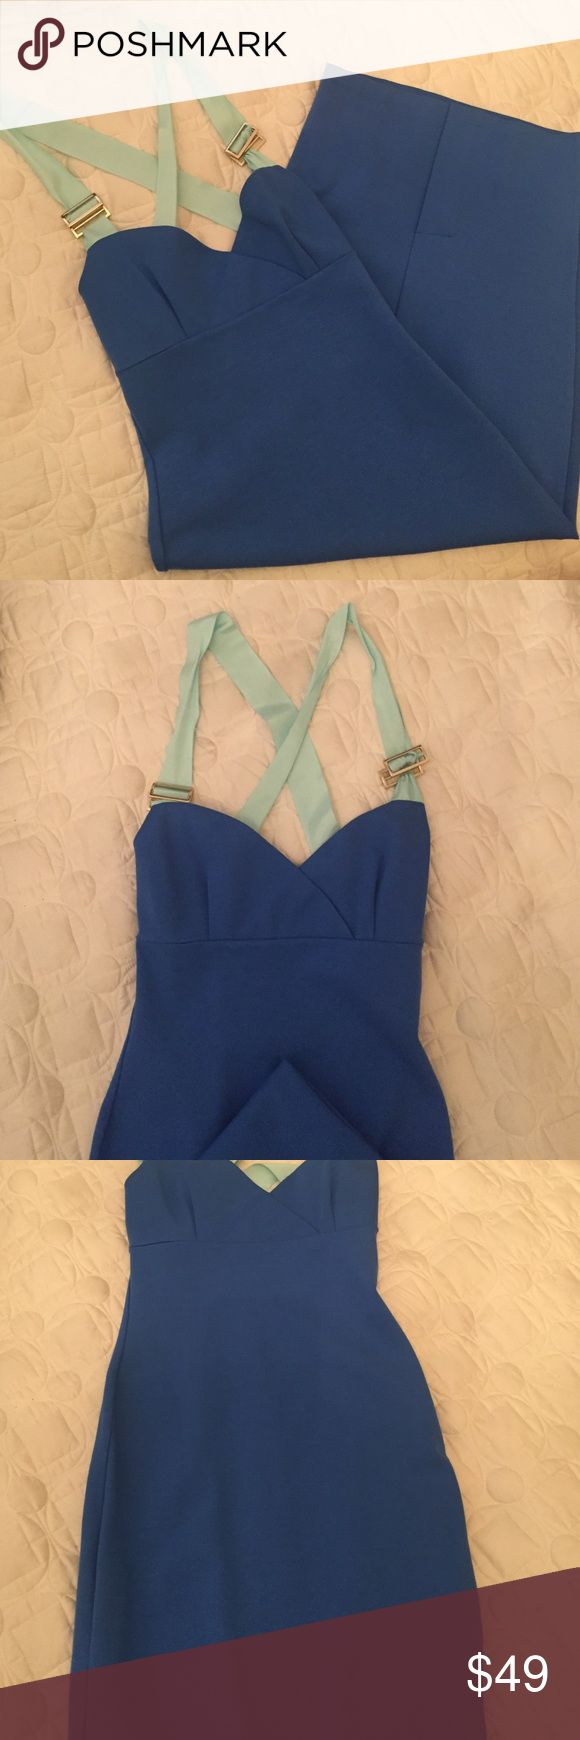 Ted baked blue bodycon dress This sexy dress is perfect for spring! It has a criss cross back with light blue fabric straps that are adjustable. Ted Baker Dresses Midi